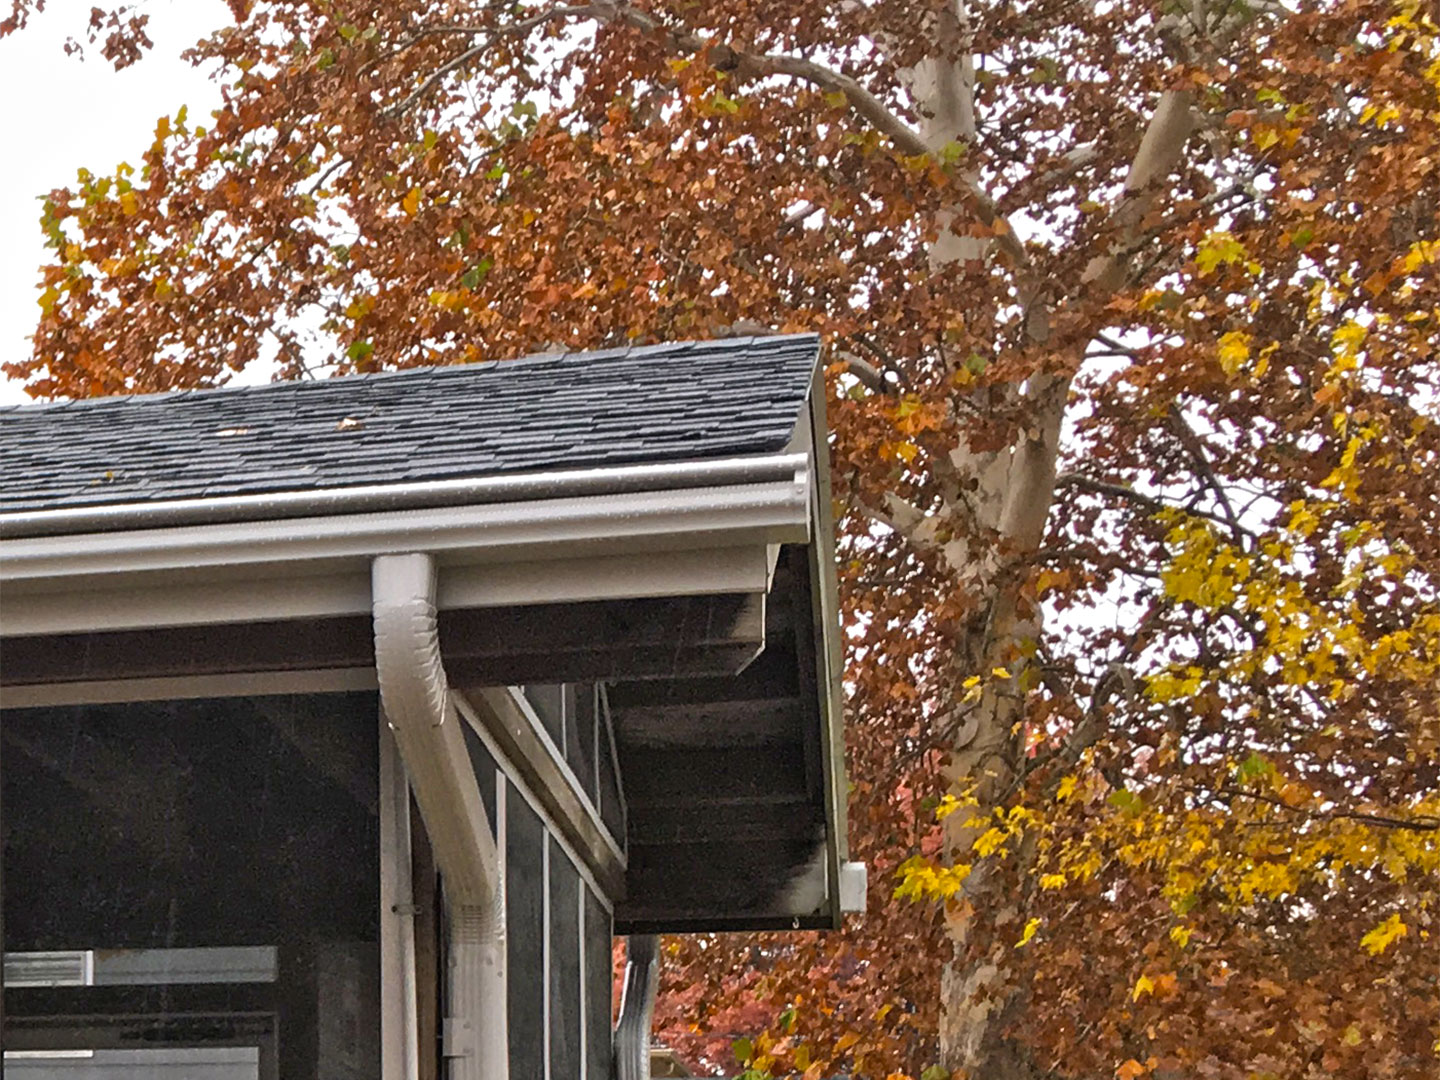 LeafGuard®'s patented design allows rainwater to travel down and around its curved hood and into the gutter, while deflecting leaves and debris with the scientific principle of Liquid Adhesion.